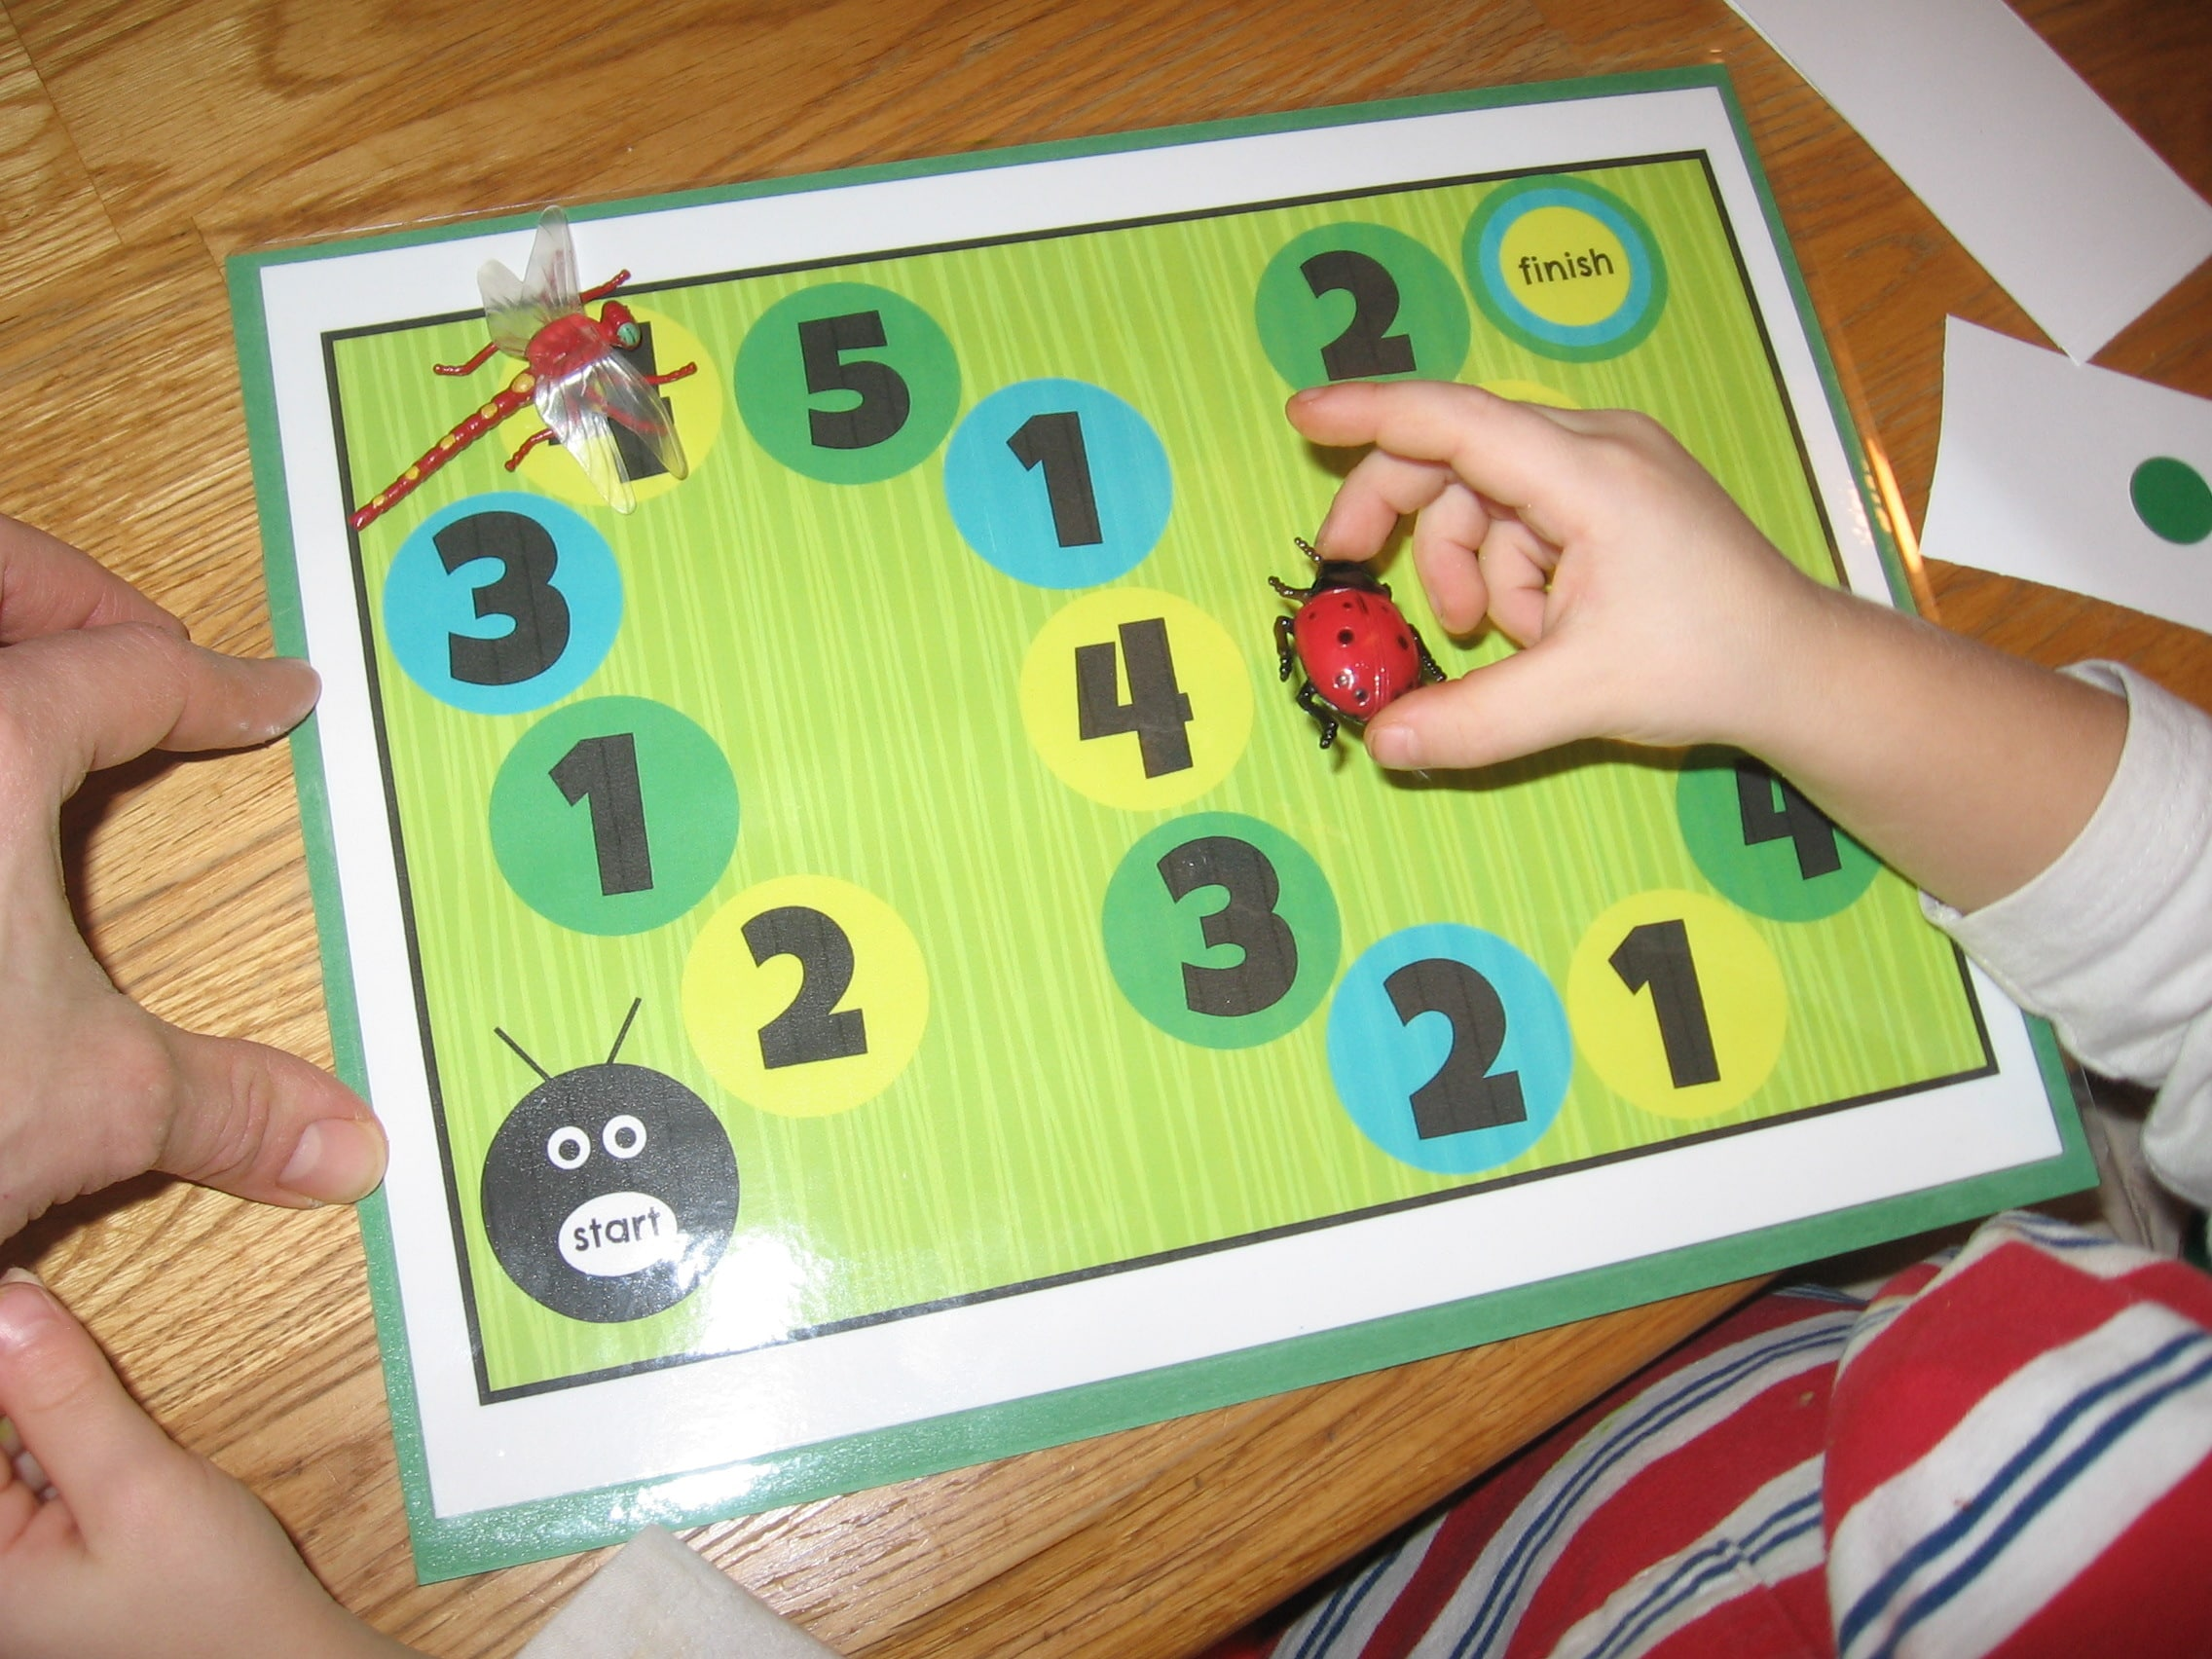 Buggy Board Game   a first board game for preschoolers   The     child placing toy bug on counting mat